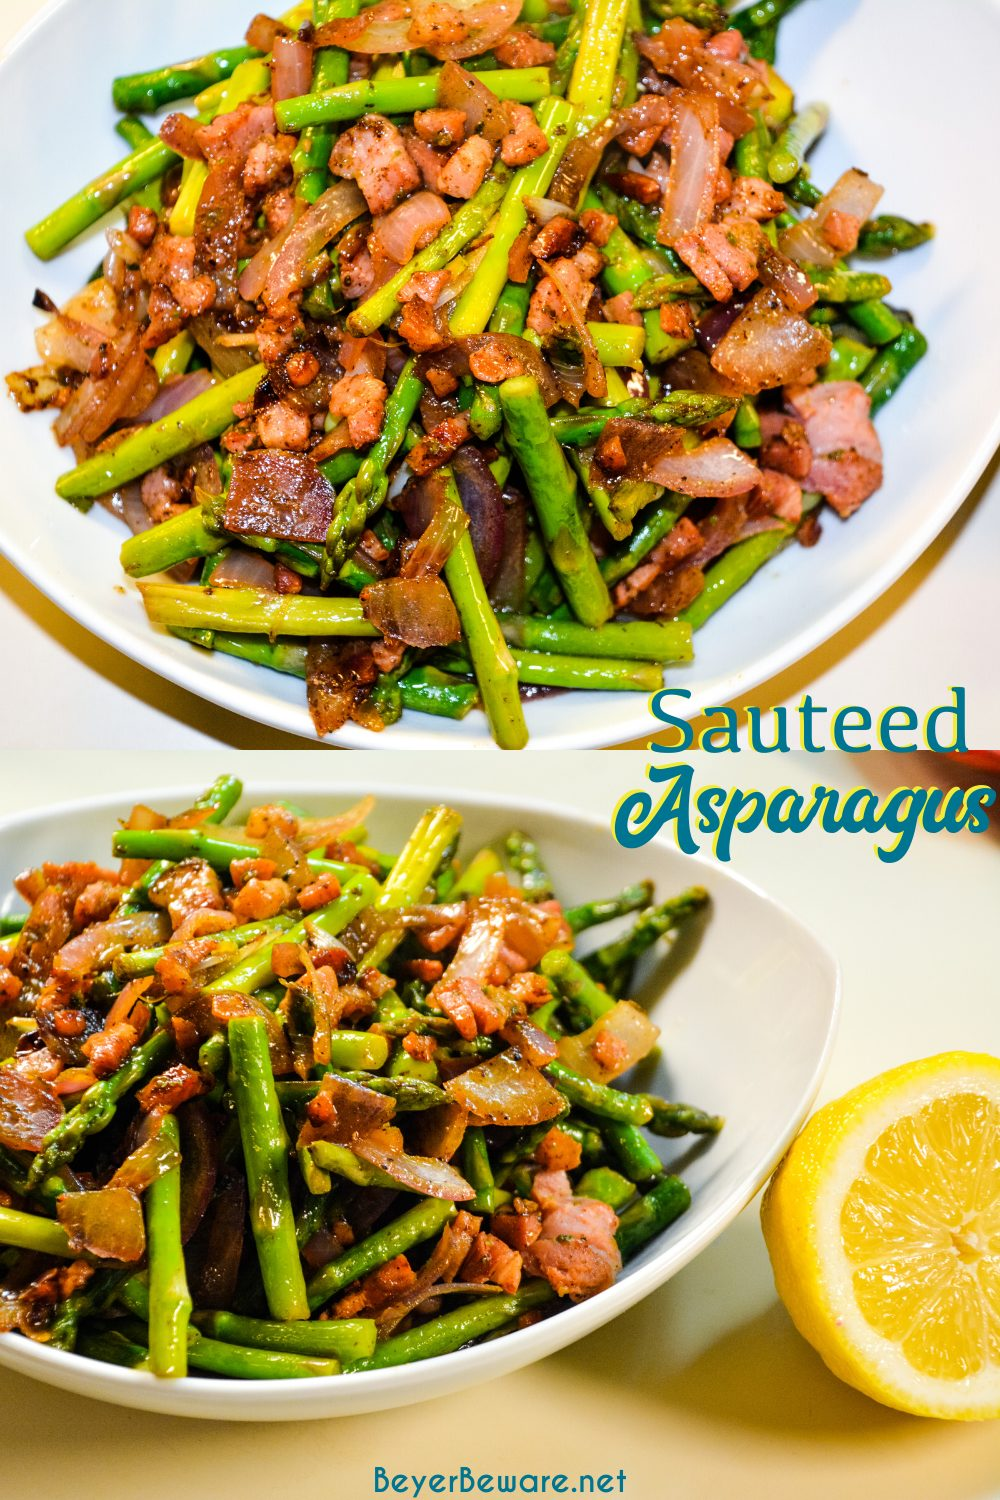 Sauteed asparagus with bacon and onions recipe is the perfect low-carb side dish to make with fresh spring asparagus without taking too much time or effort.